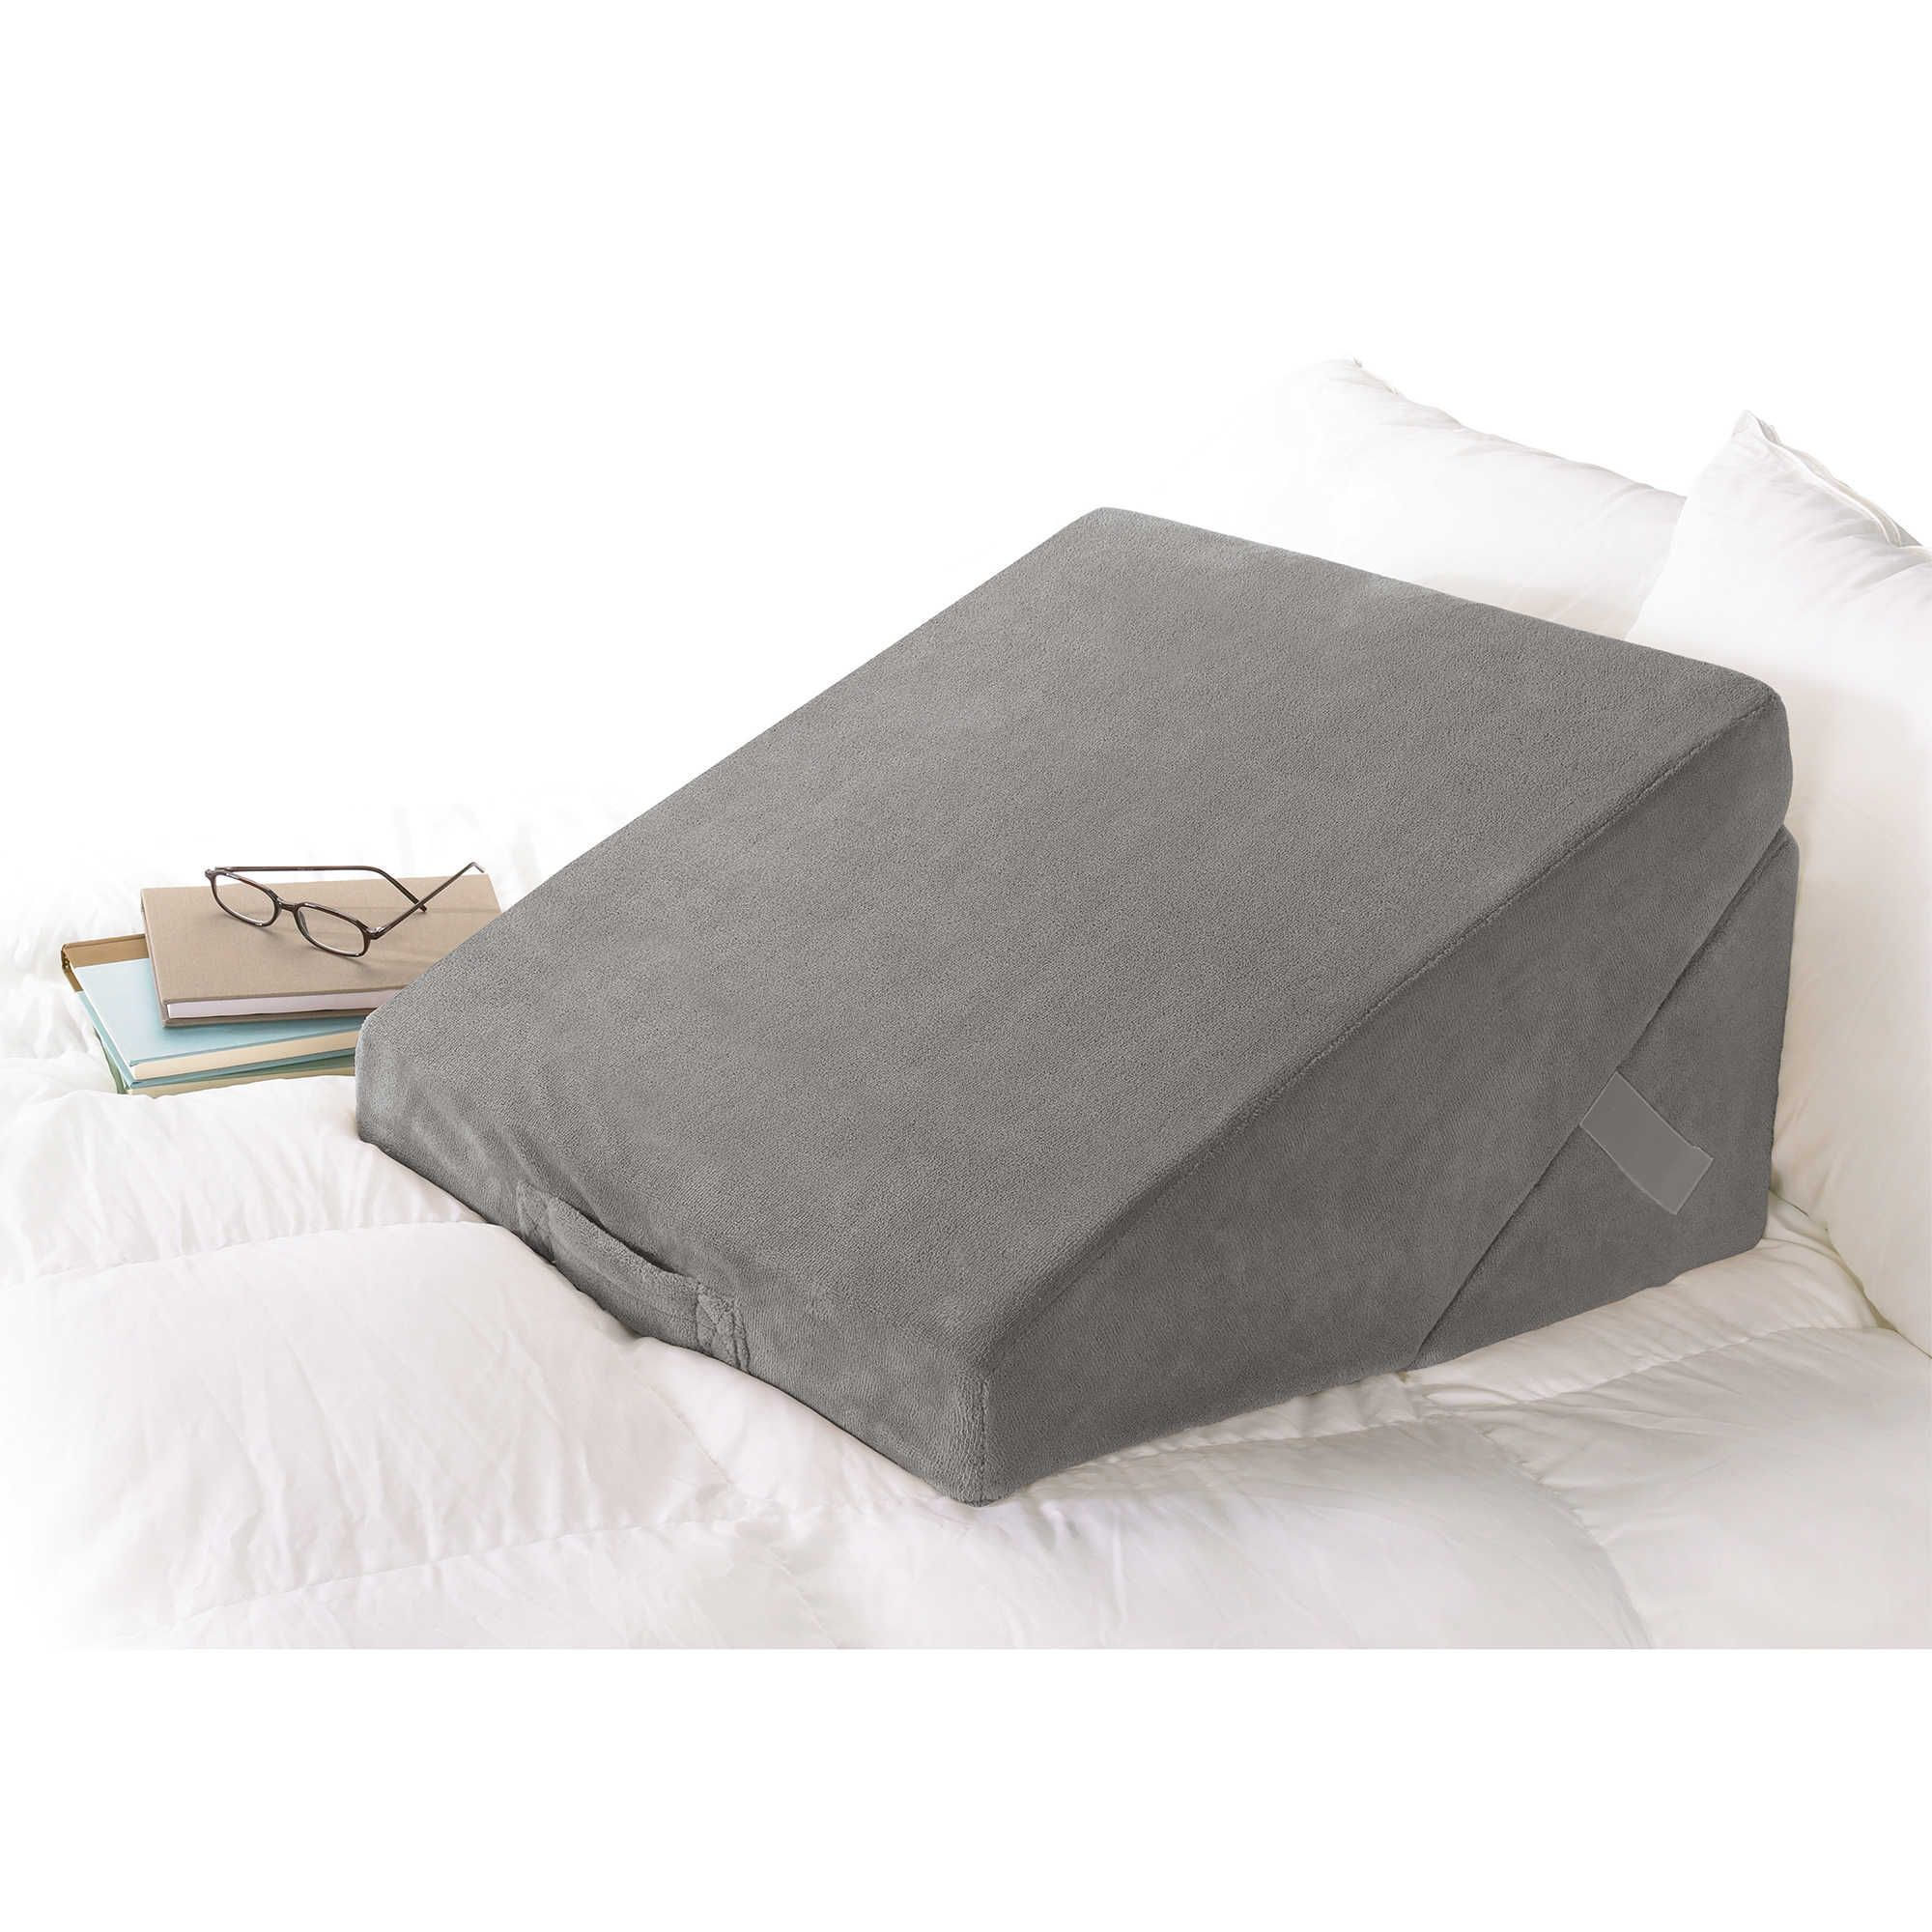 Brookstone 174 4 In 1 Bed Wedge Pillow Catholic Gifts Bed